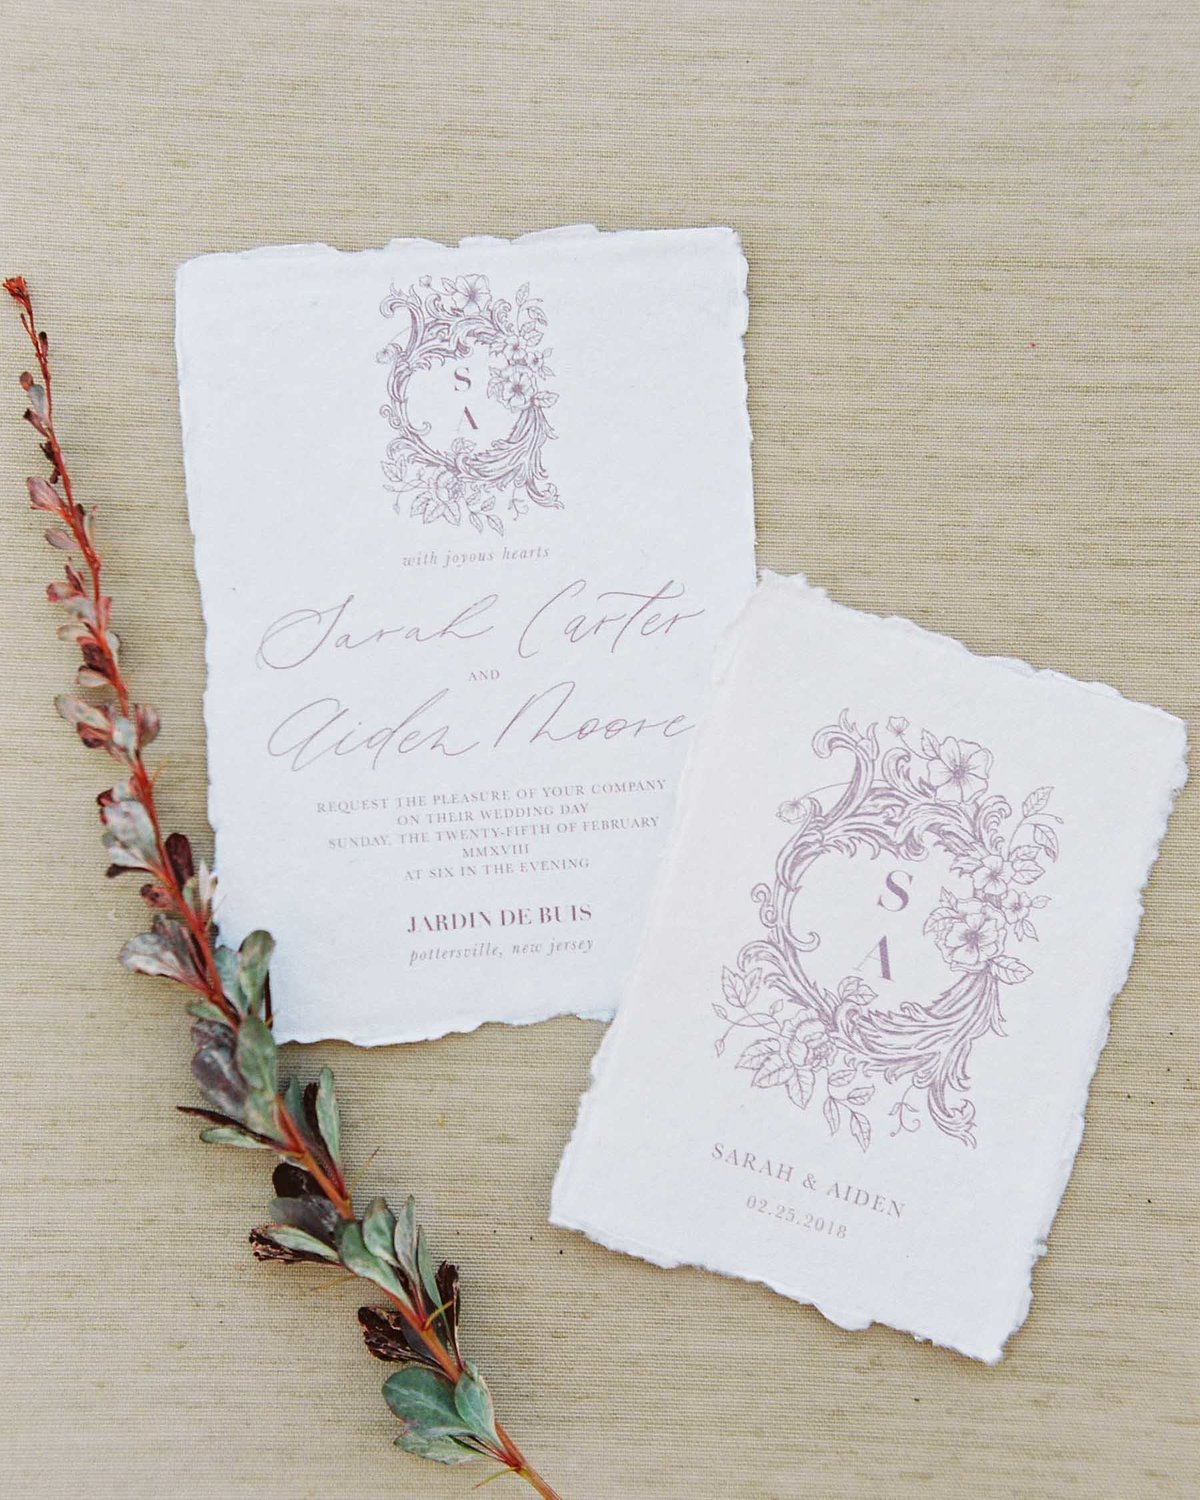 Plume & Fete wedding invitation collections romantic fine art wedding invite with custom crest and monogram lavender